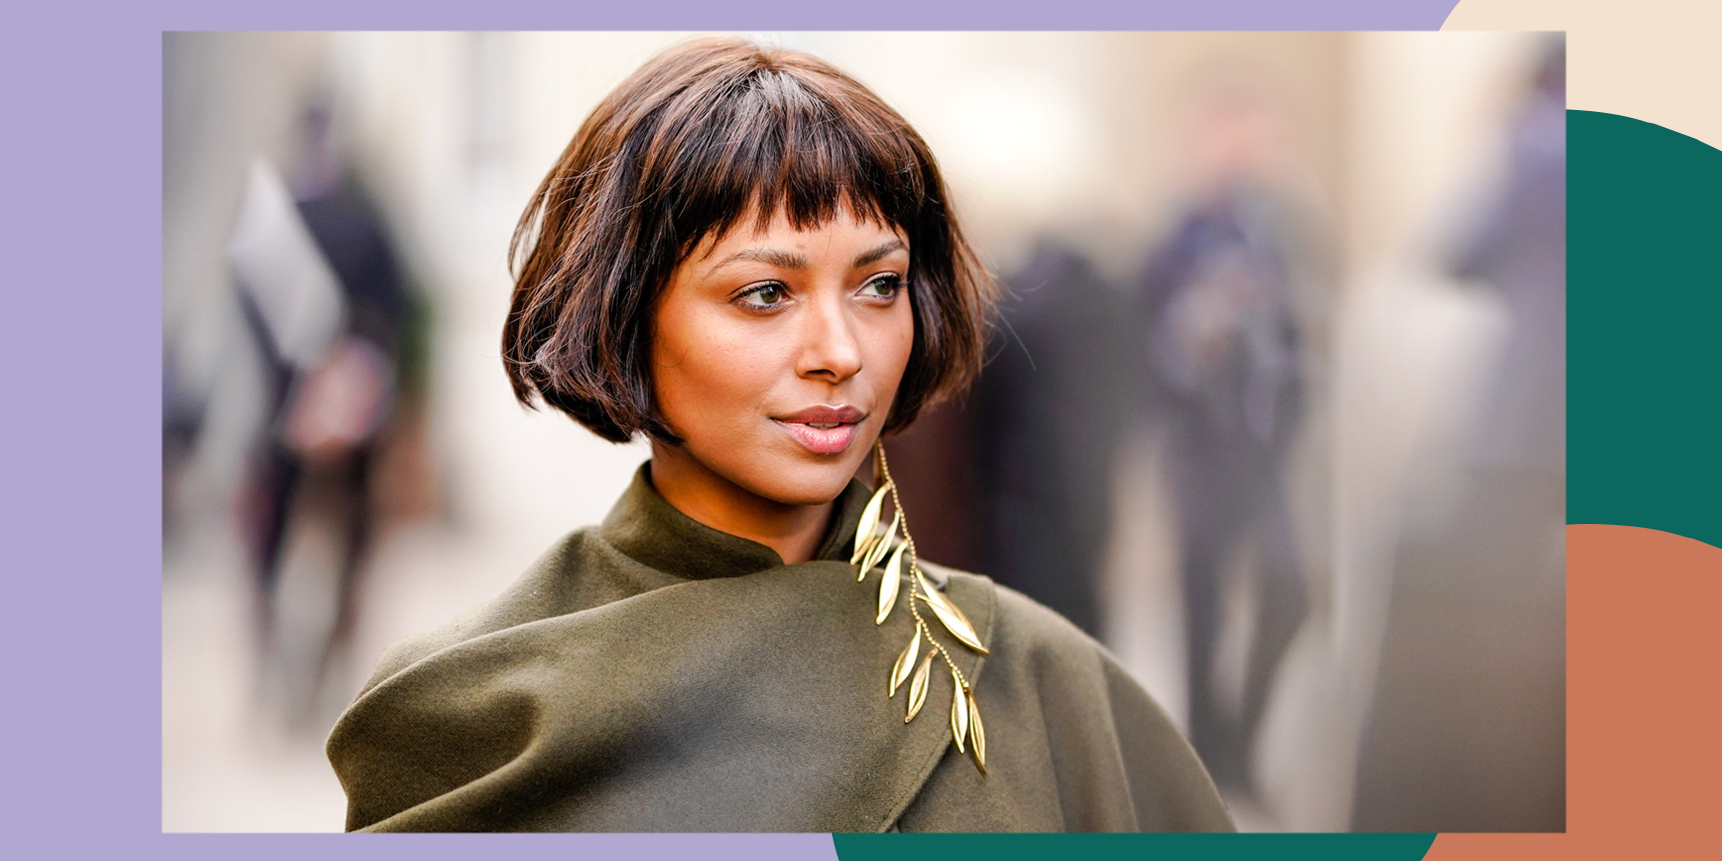 Here's how to get baby bangs without looking like a doll haircut fail